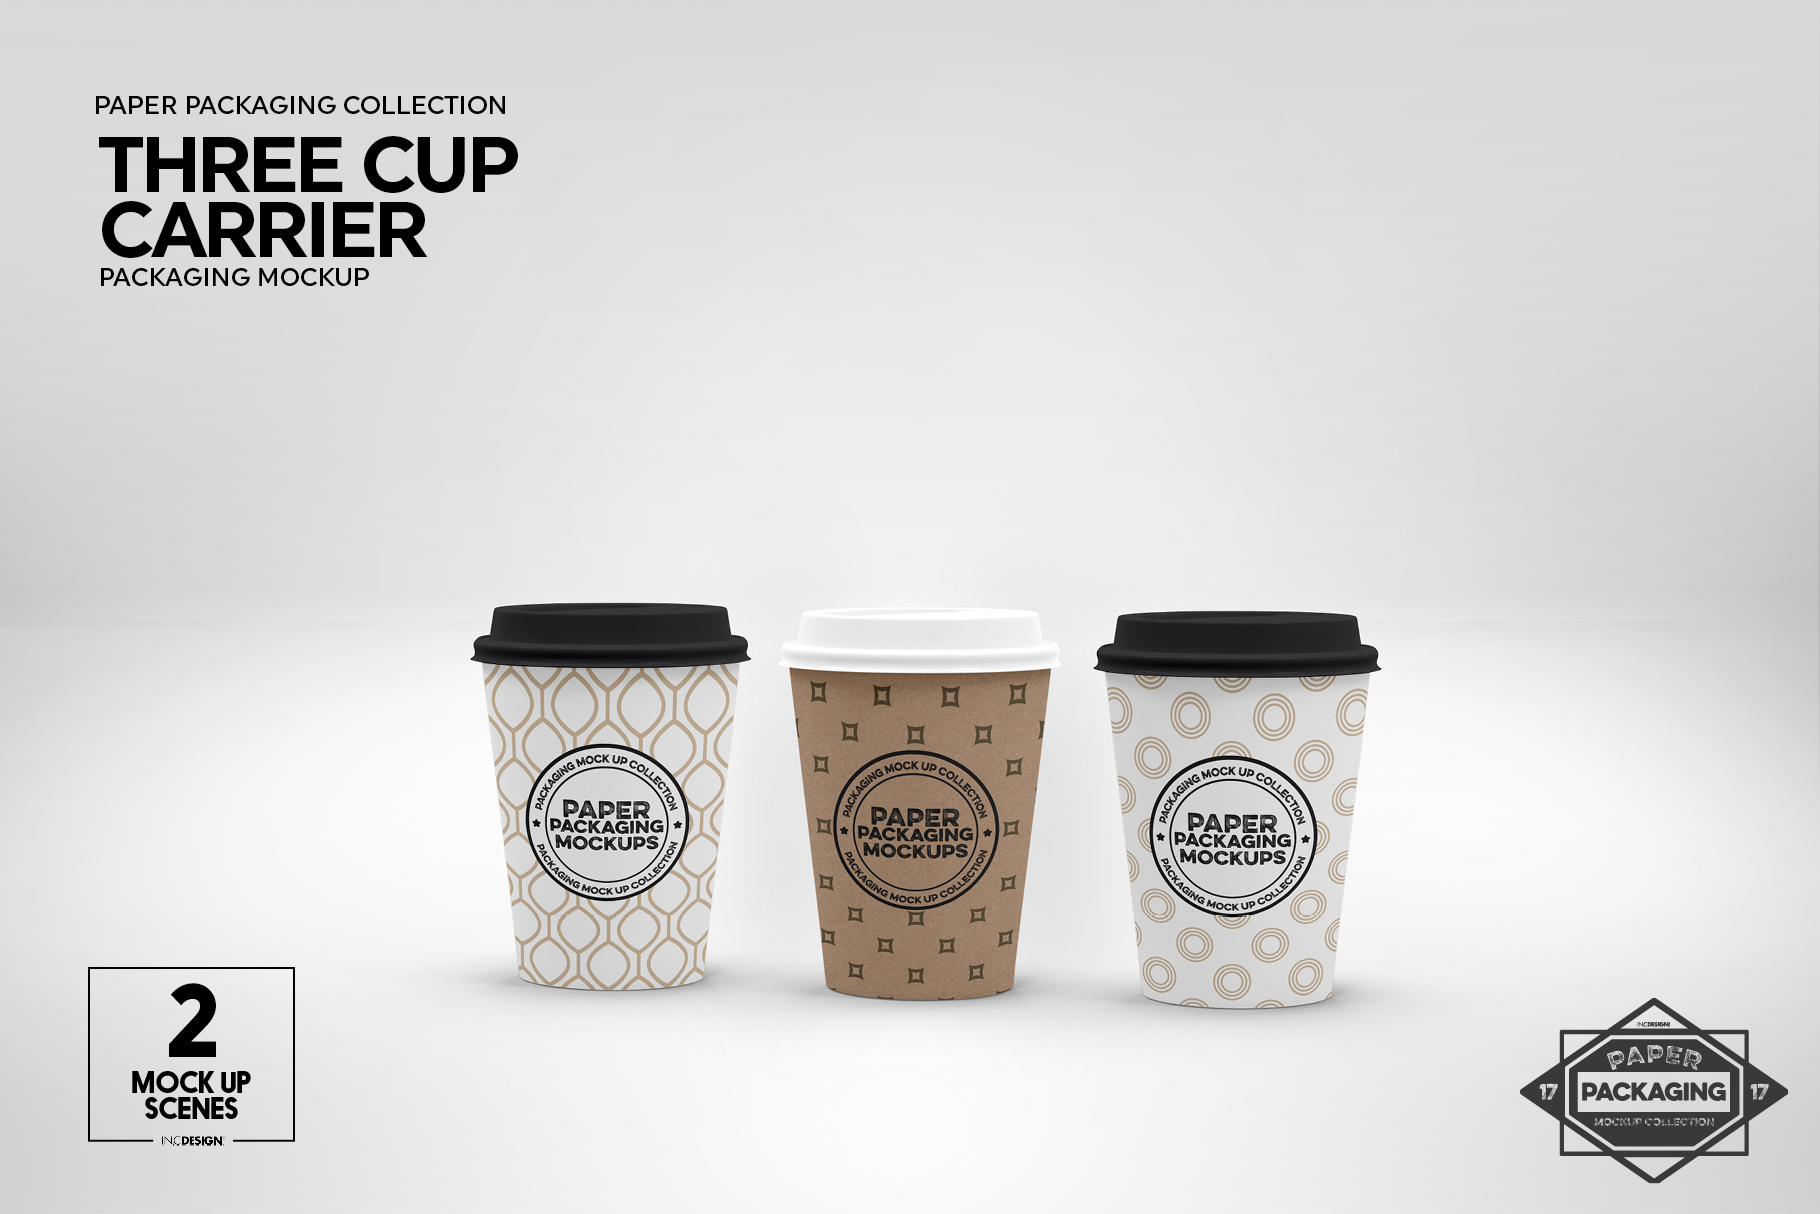 Three Cup Paper Carrier Packaging Mockup example image 7